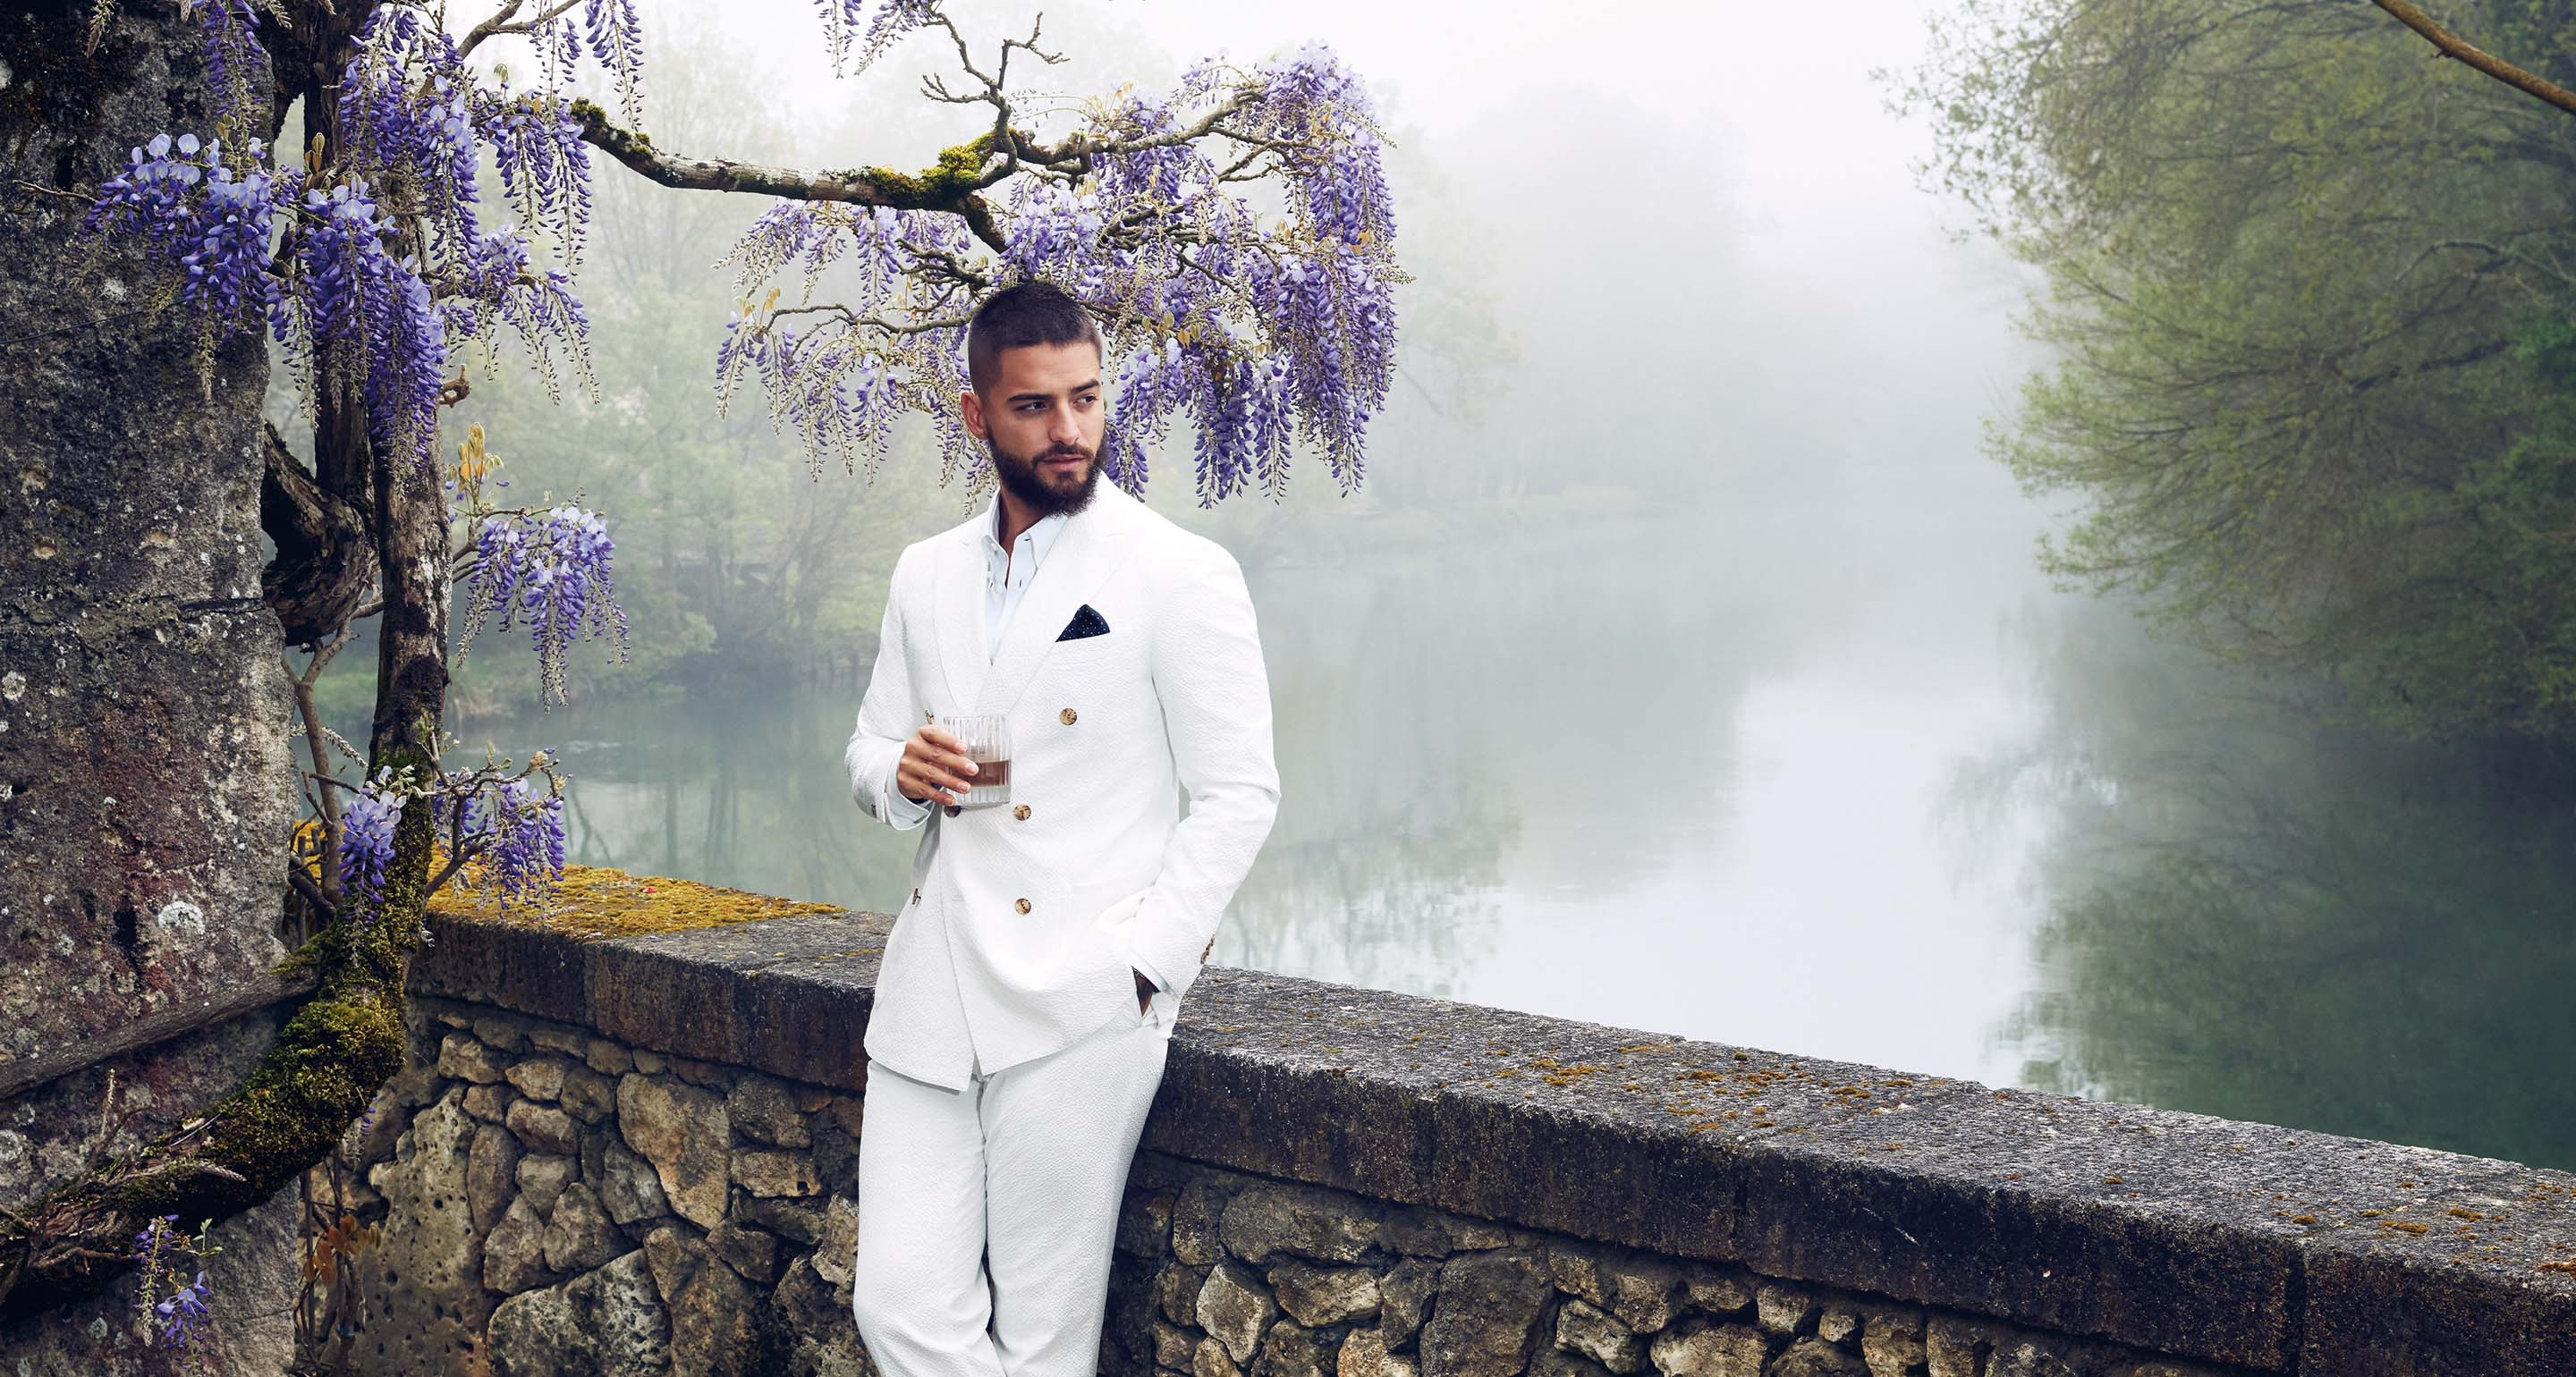 Award-winning musician Maluma with a Hennessy cocktail in his hand, wearing a white suit standing in front of a Wisteria tree and leaning against a stone ledge.